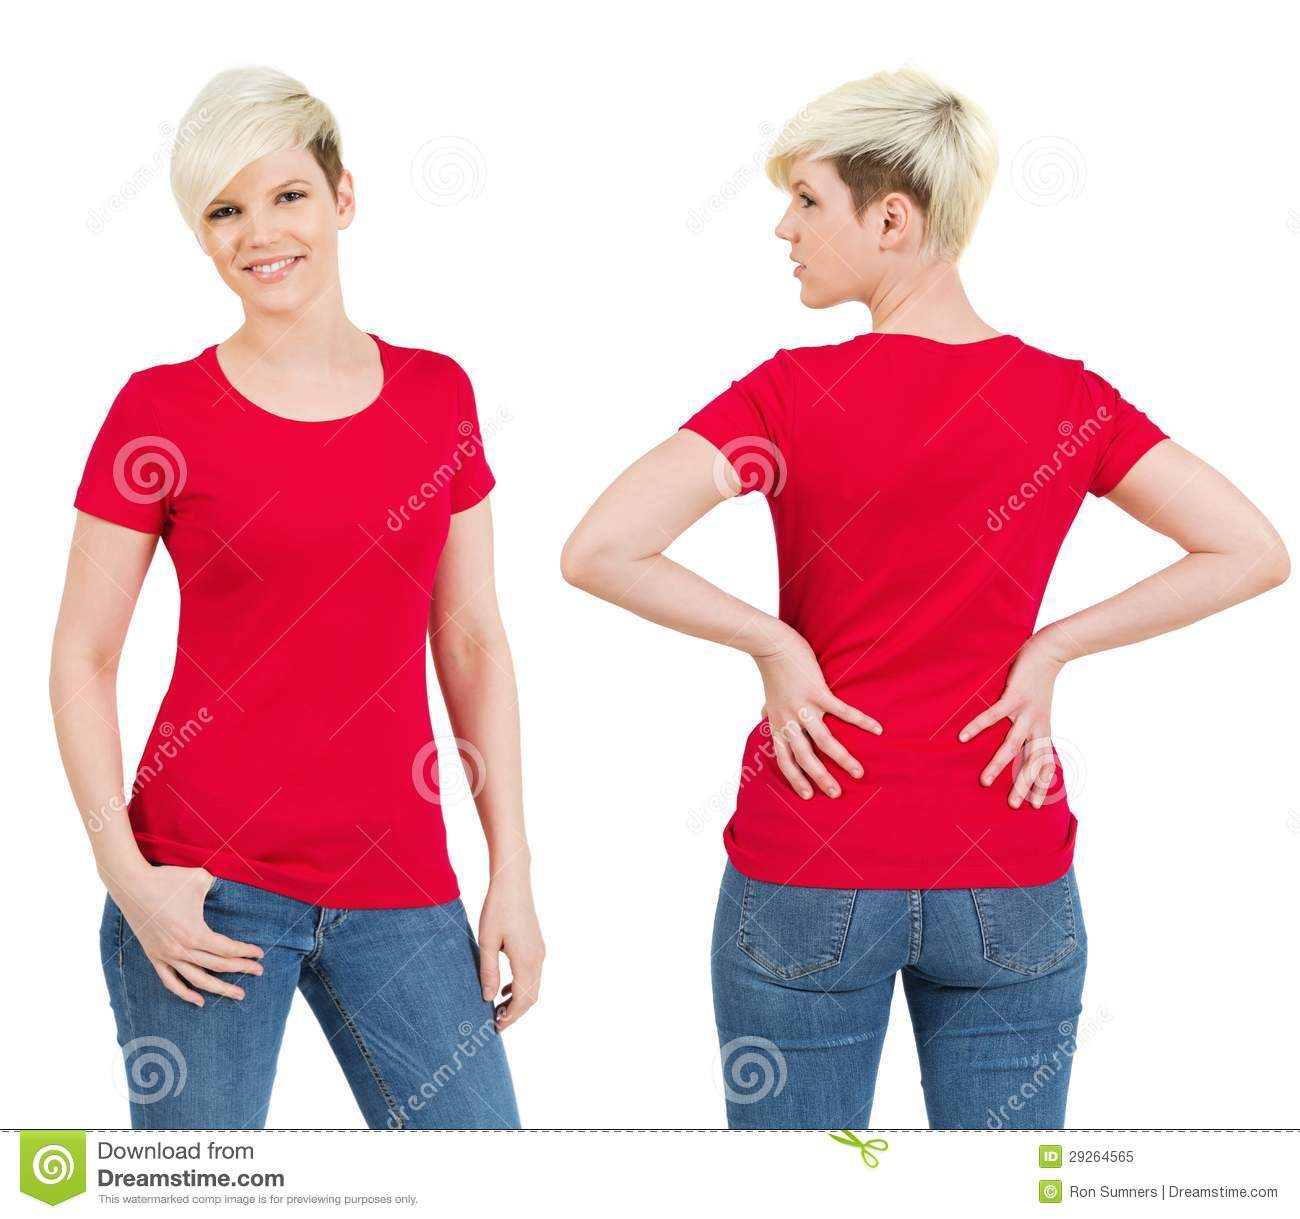 2730a26f Young beautiful blond female with blank red shirt, front and back. Ready  for your design or artwork.